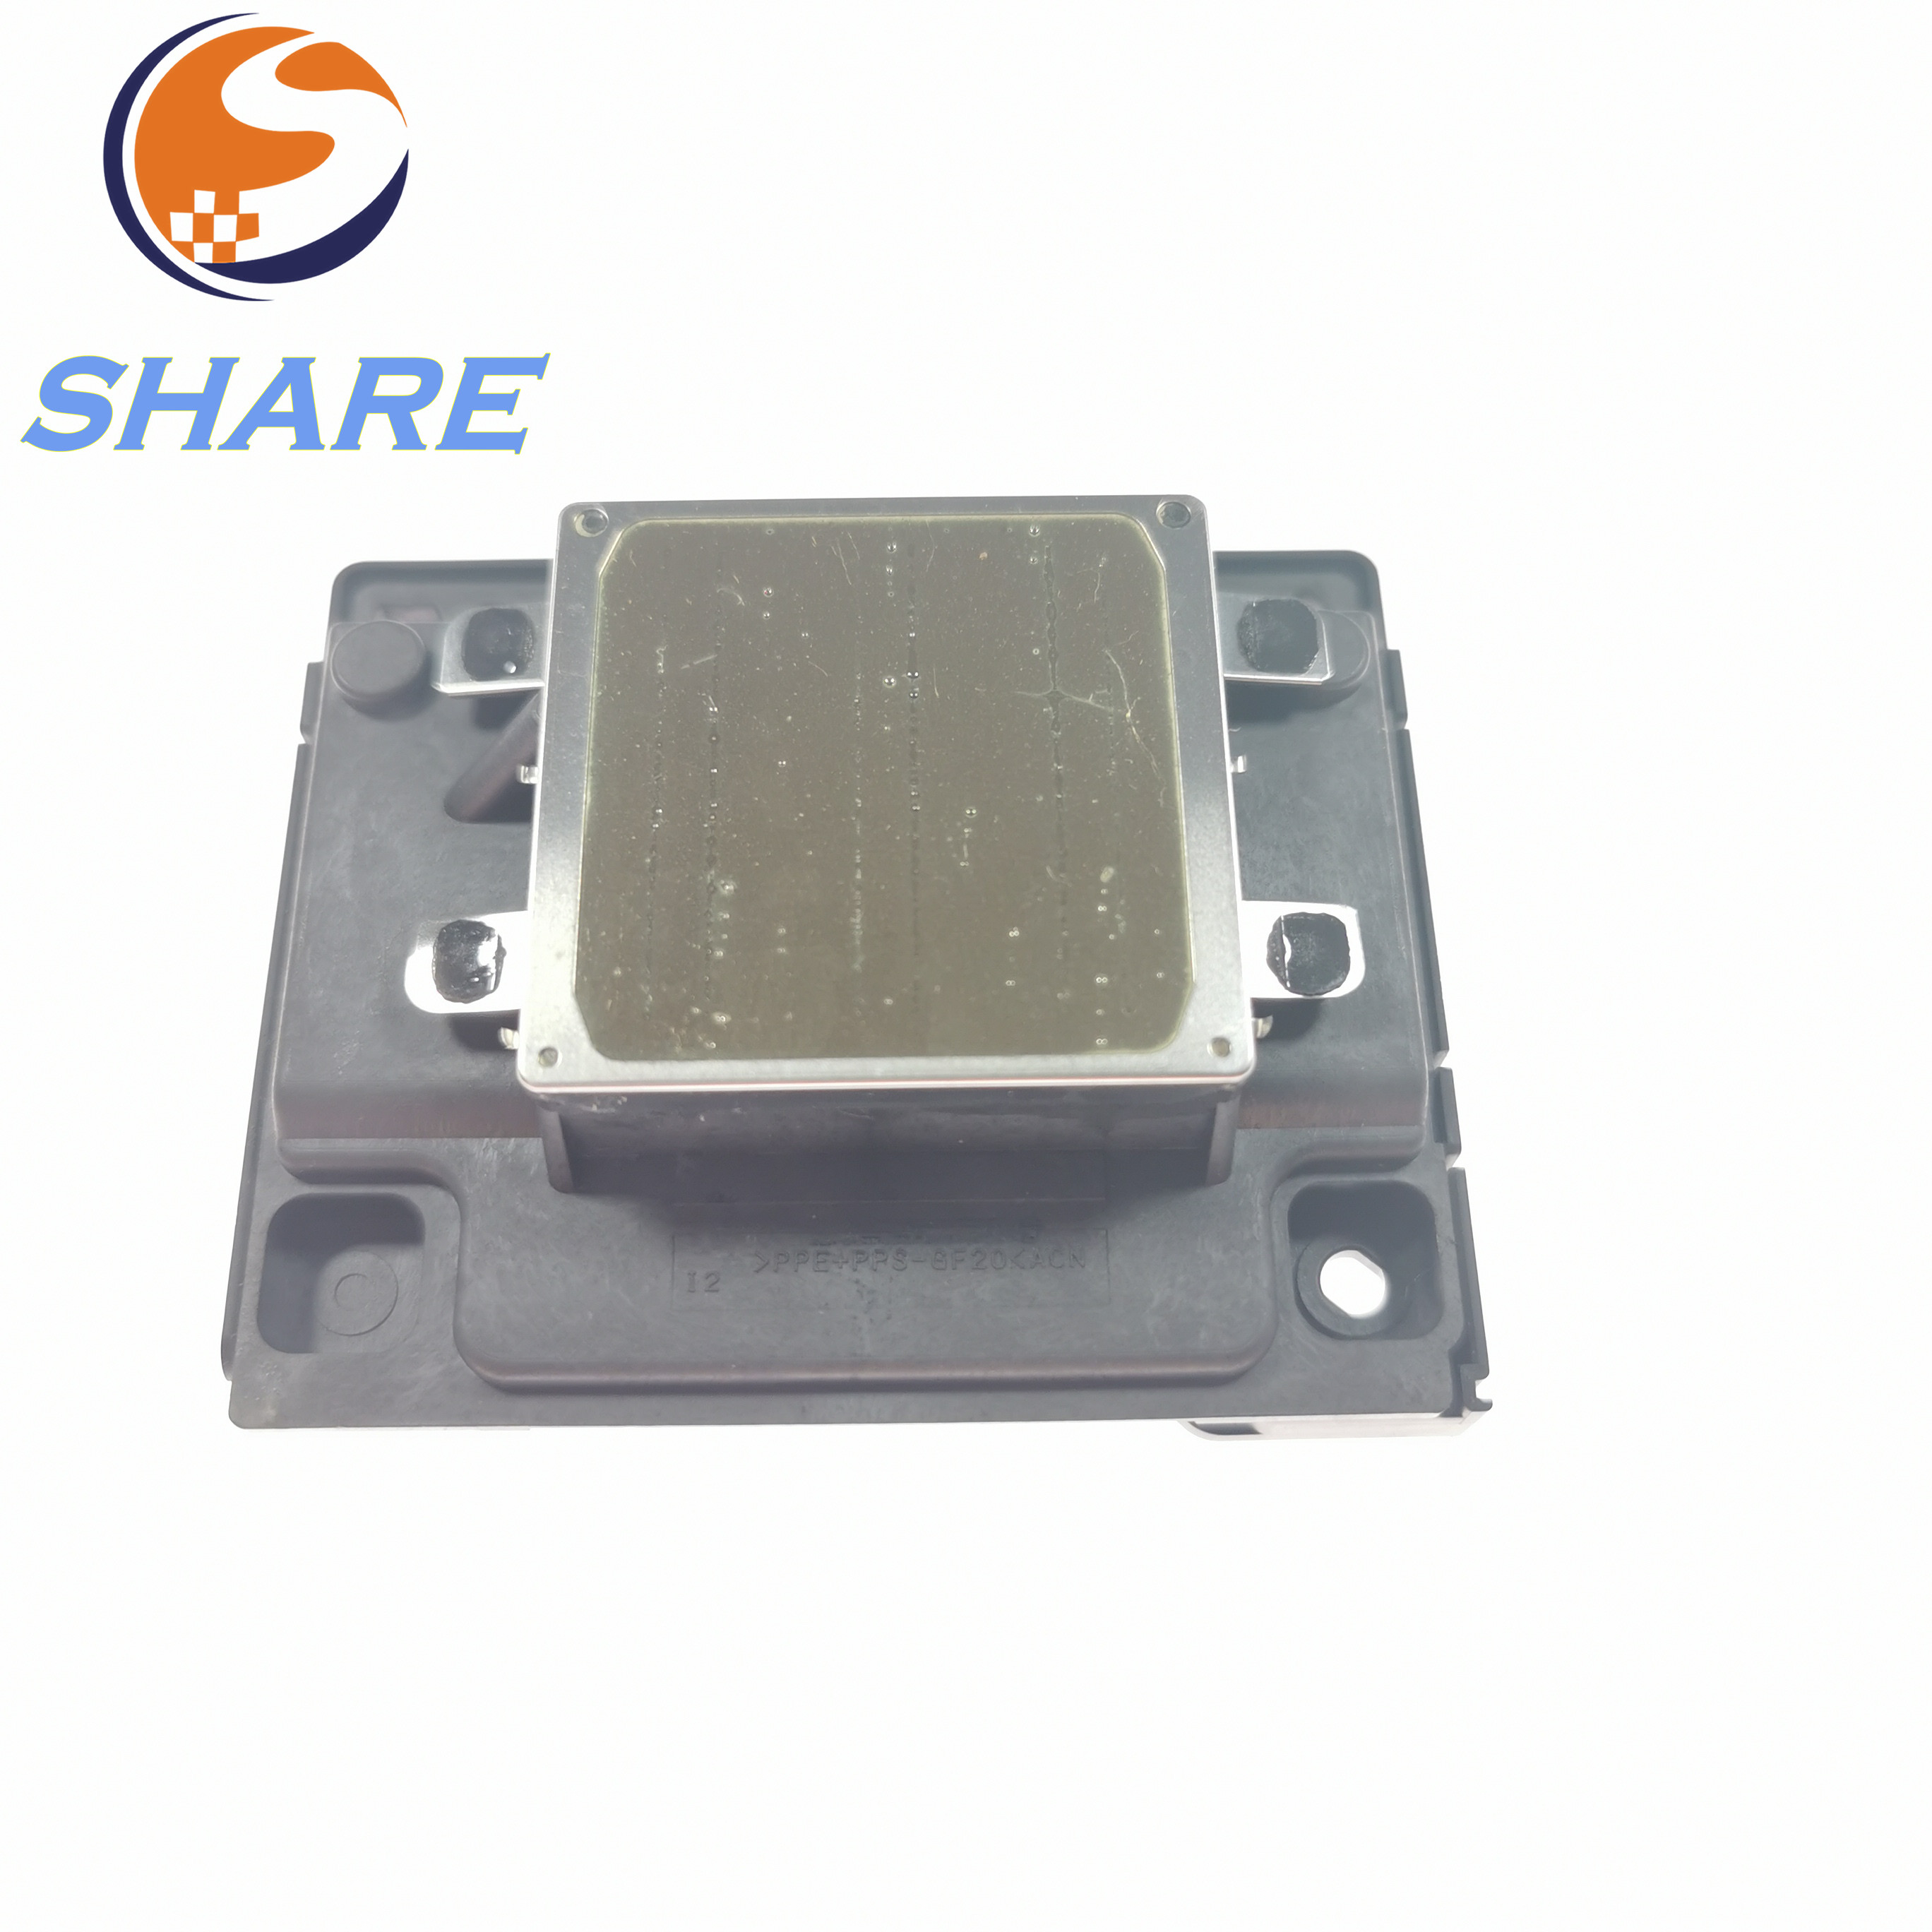 New F190000 F190010 F190020 Printhead Printer Print Head For Epson WF-7015 7510 WF7511 WF7515 WF-7520 WF-7521 WF-7525